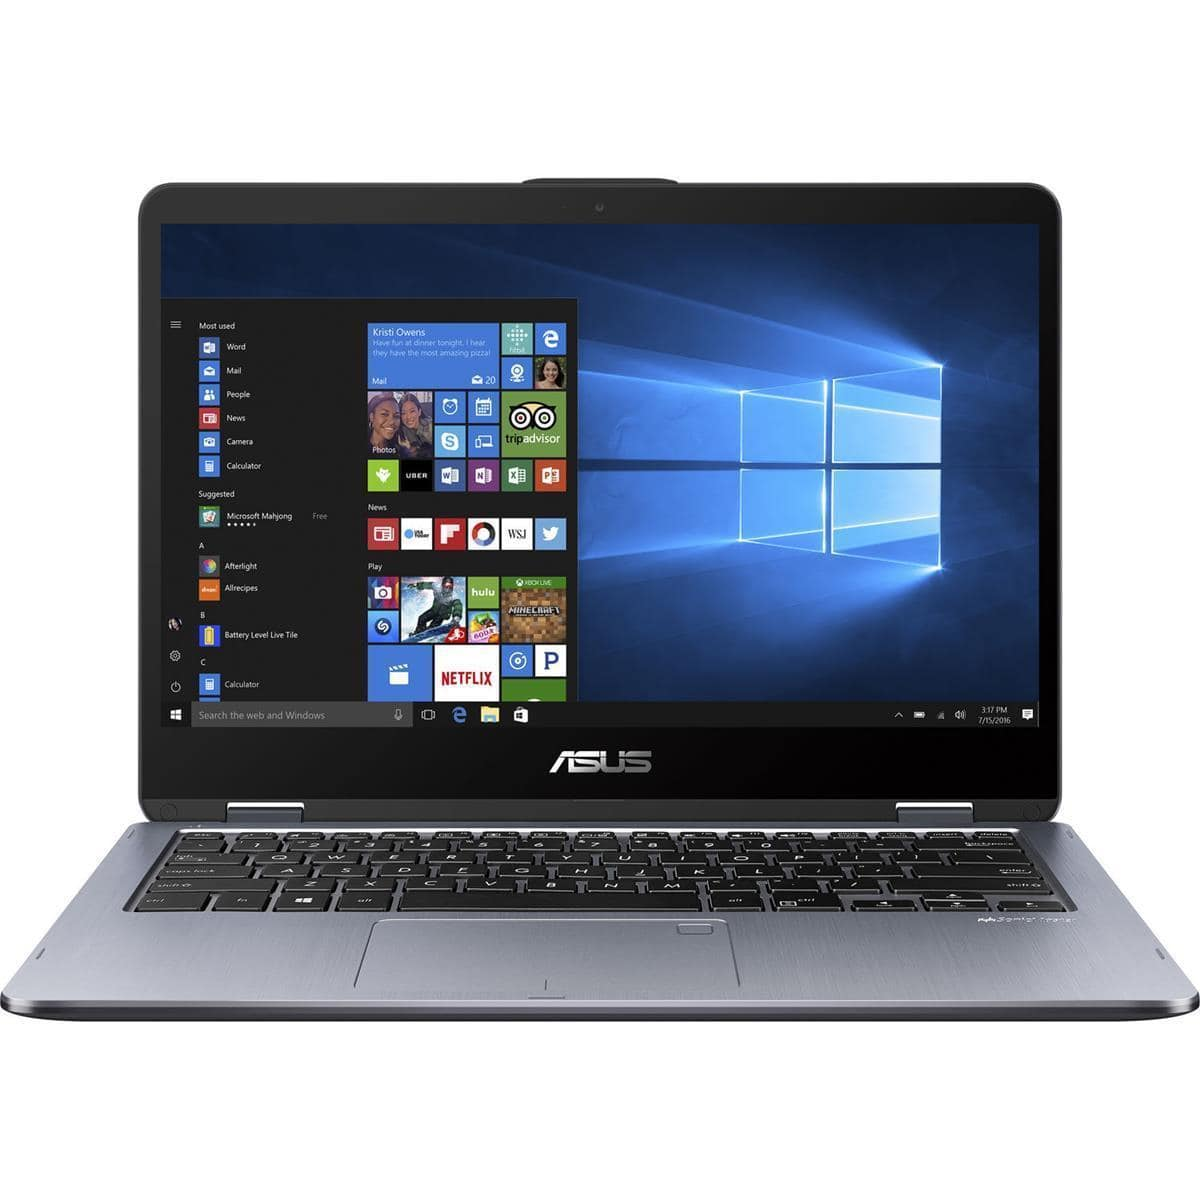 "ASUS Vivobook Flip 14.0"" Full HD Touchscreen Notebook Computer with Stylus Pen, Intel Core i5-7200U 2.50GHz , 6GB RAM, 1TB HDD $550 Shipped"